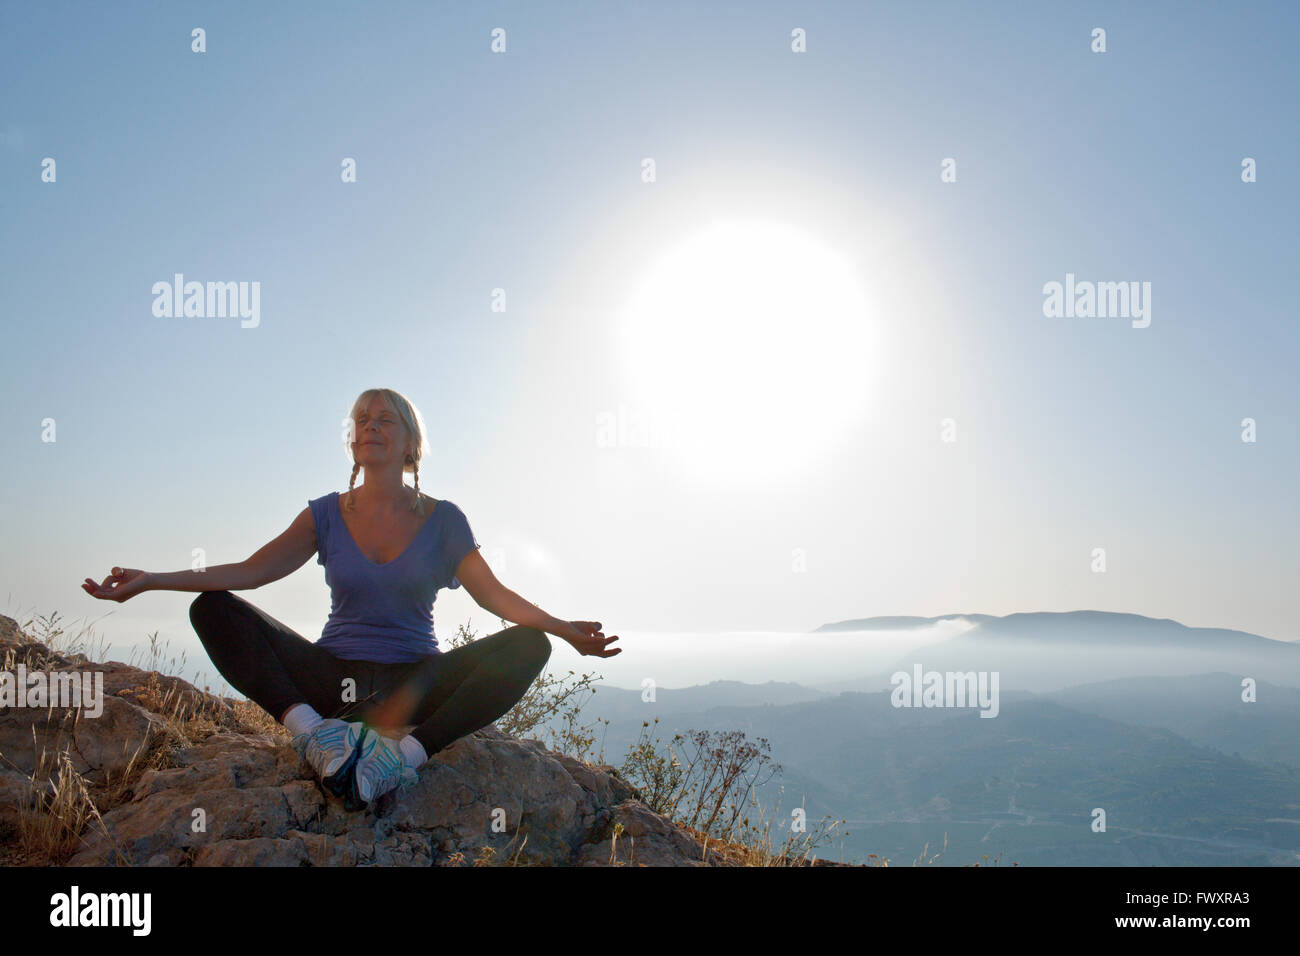 Spain, Alicante, Cocentaina, Mature woman sitting cross-legged on rocks and meditating - Stock Image